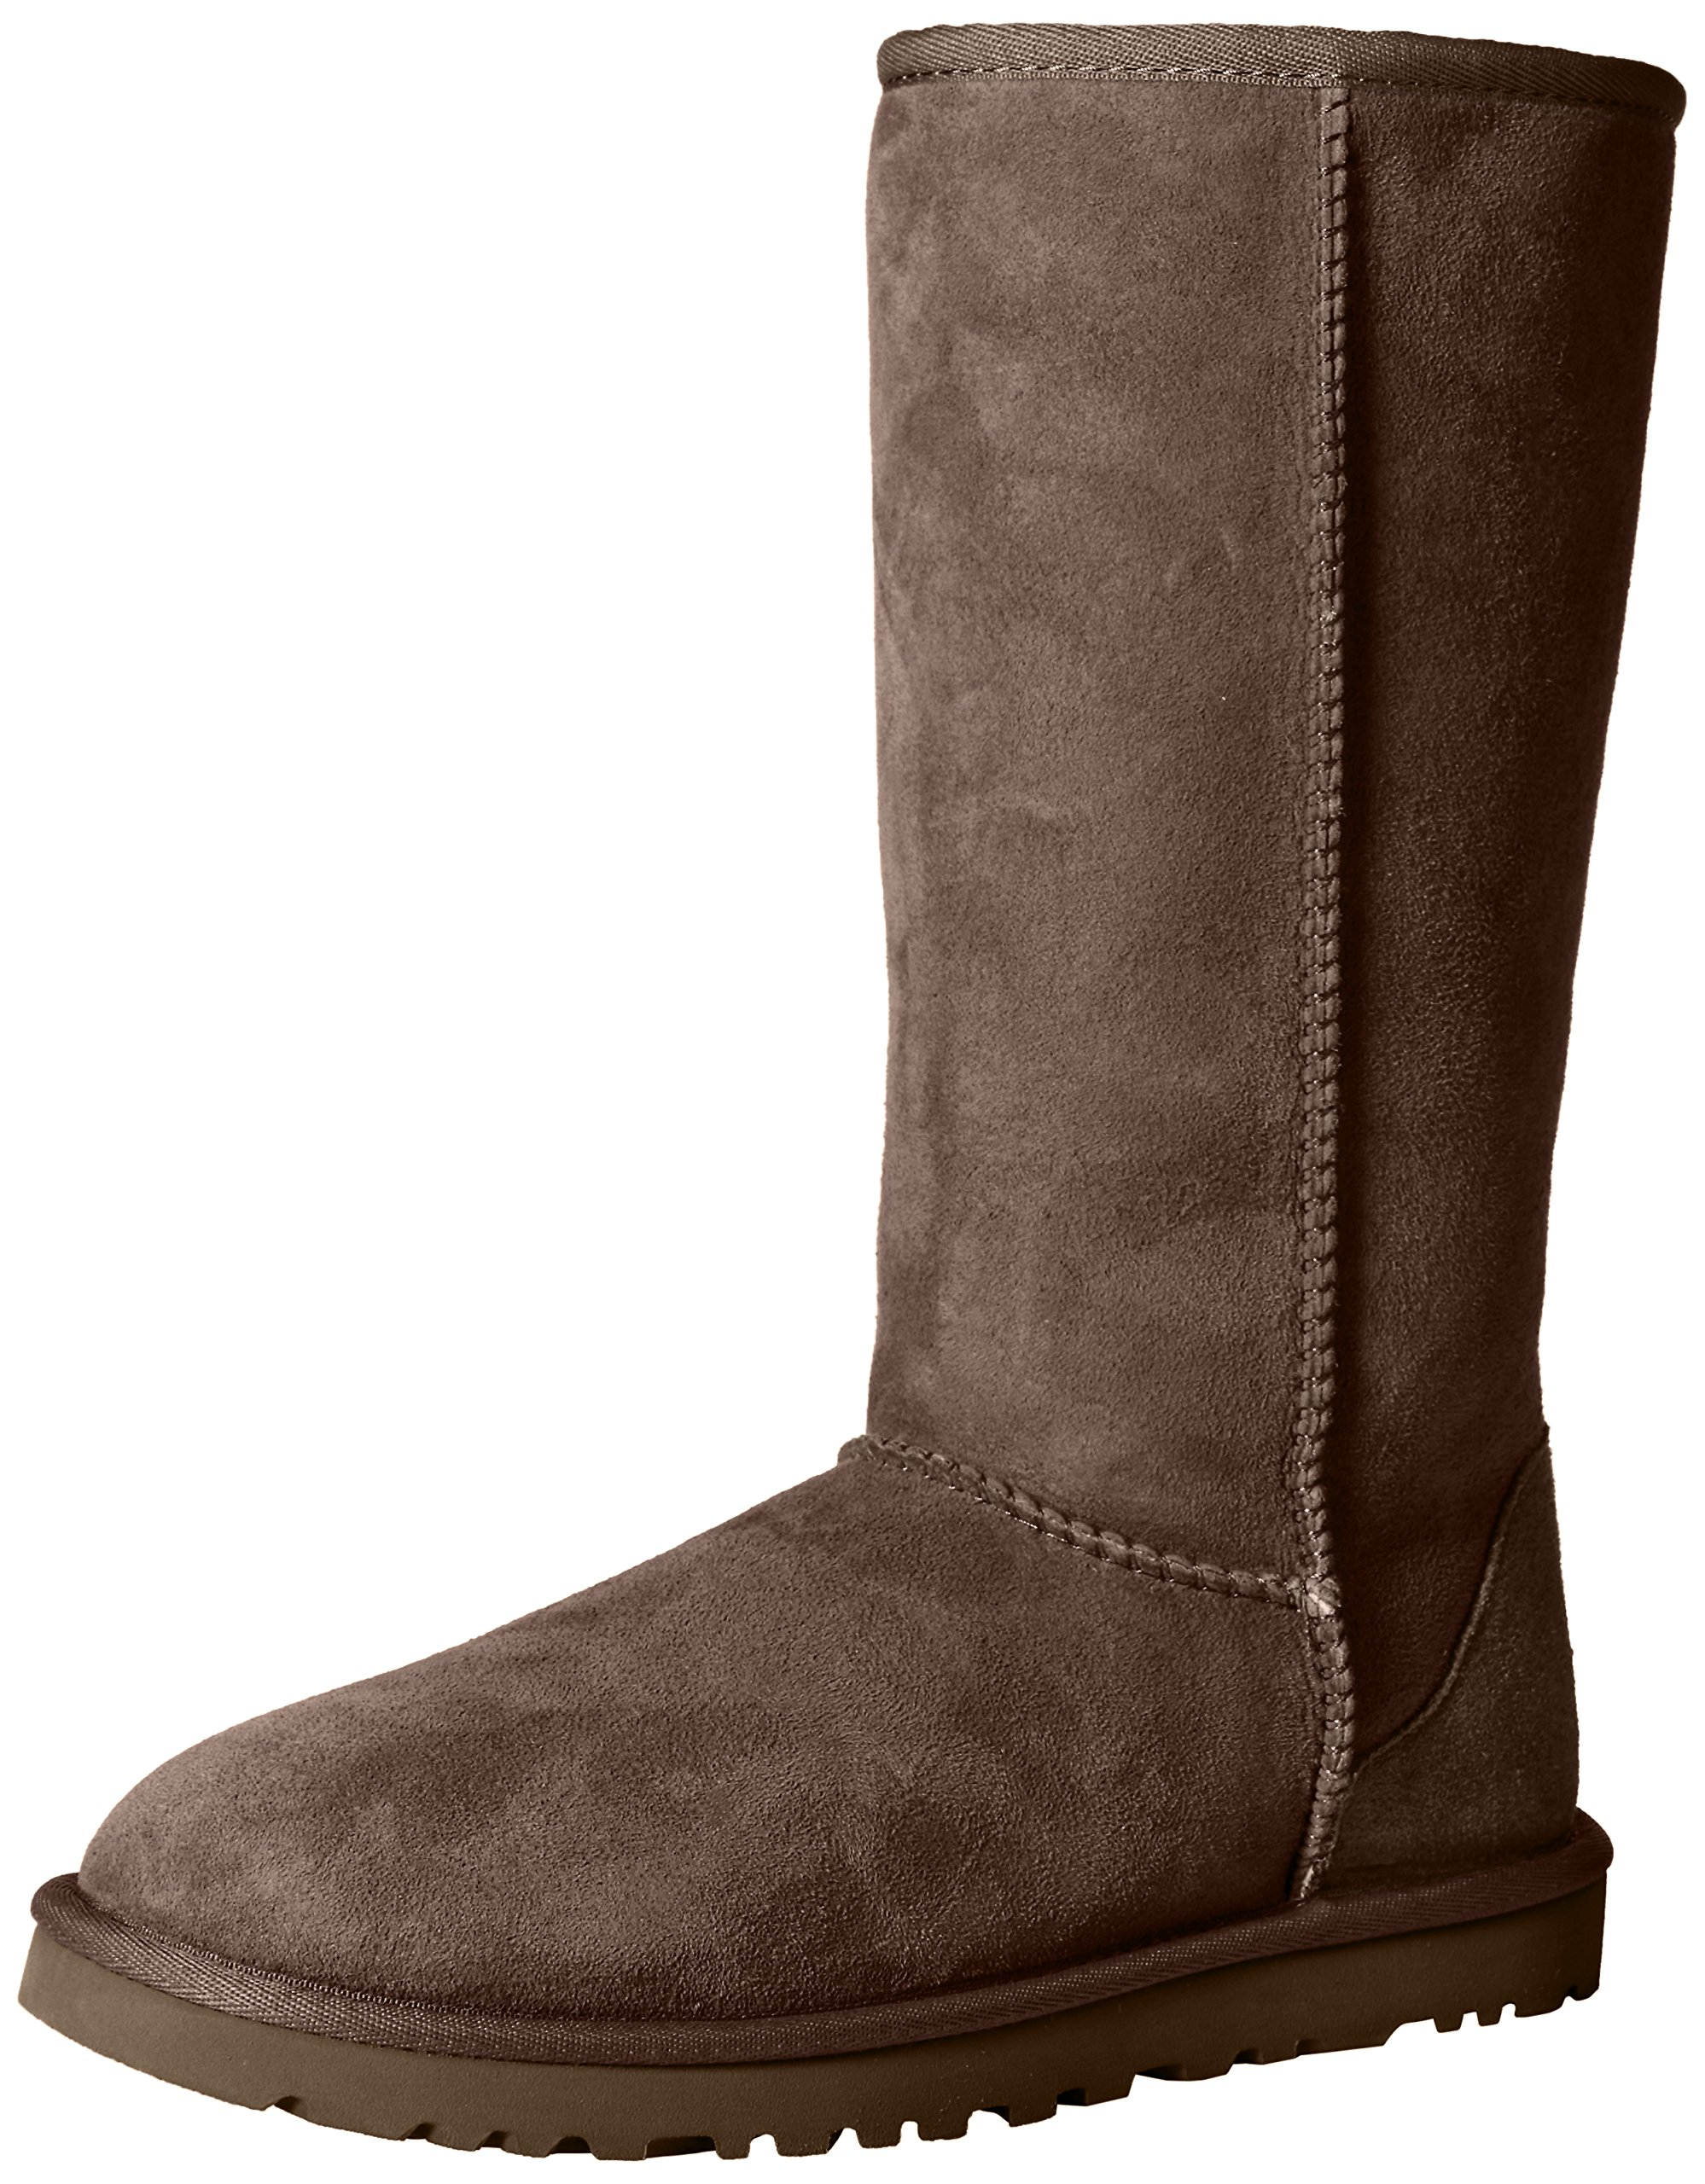 UGG Australia Women's Classic Tall Boots 7 m (US), Chocolate by UGG